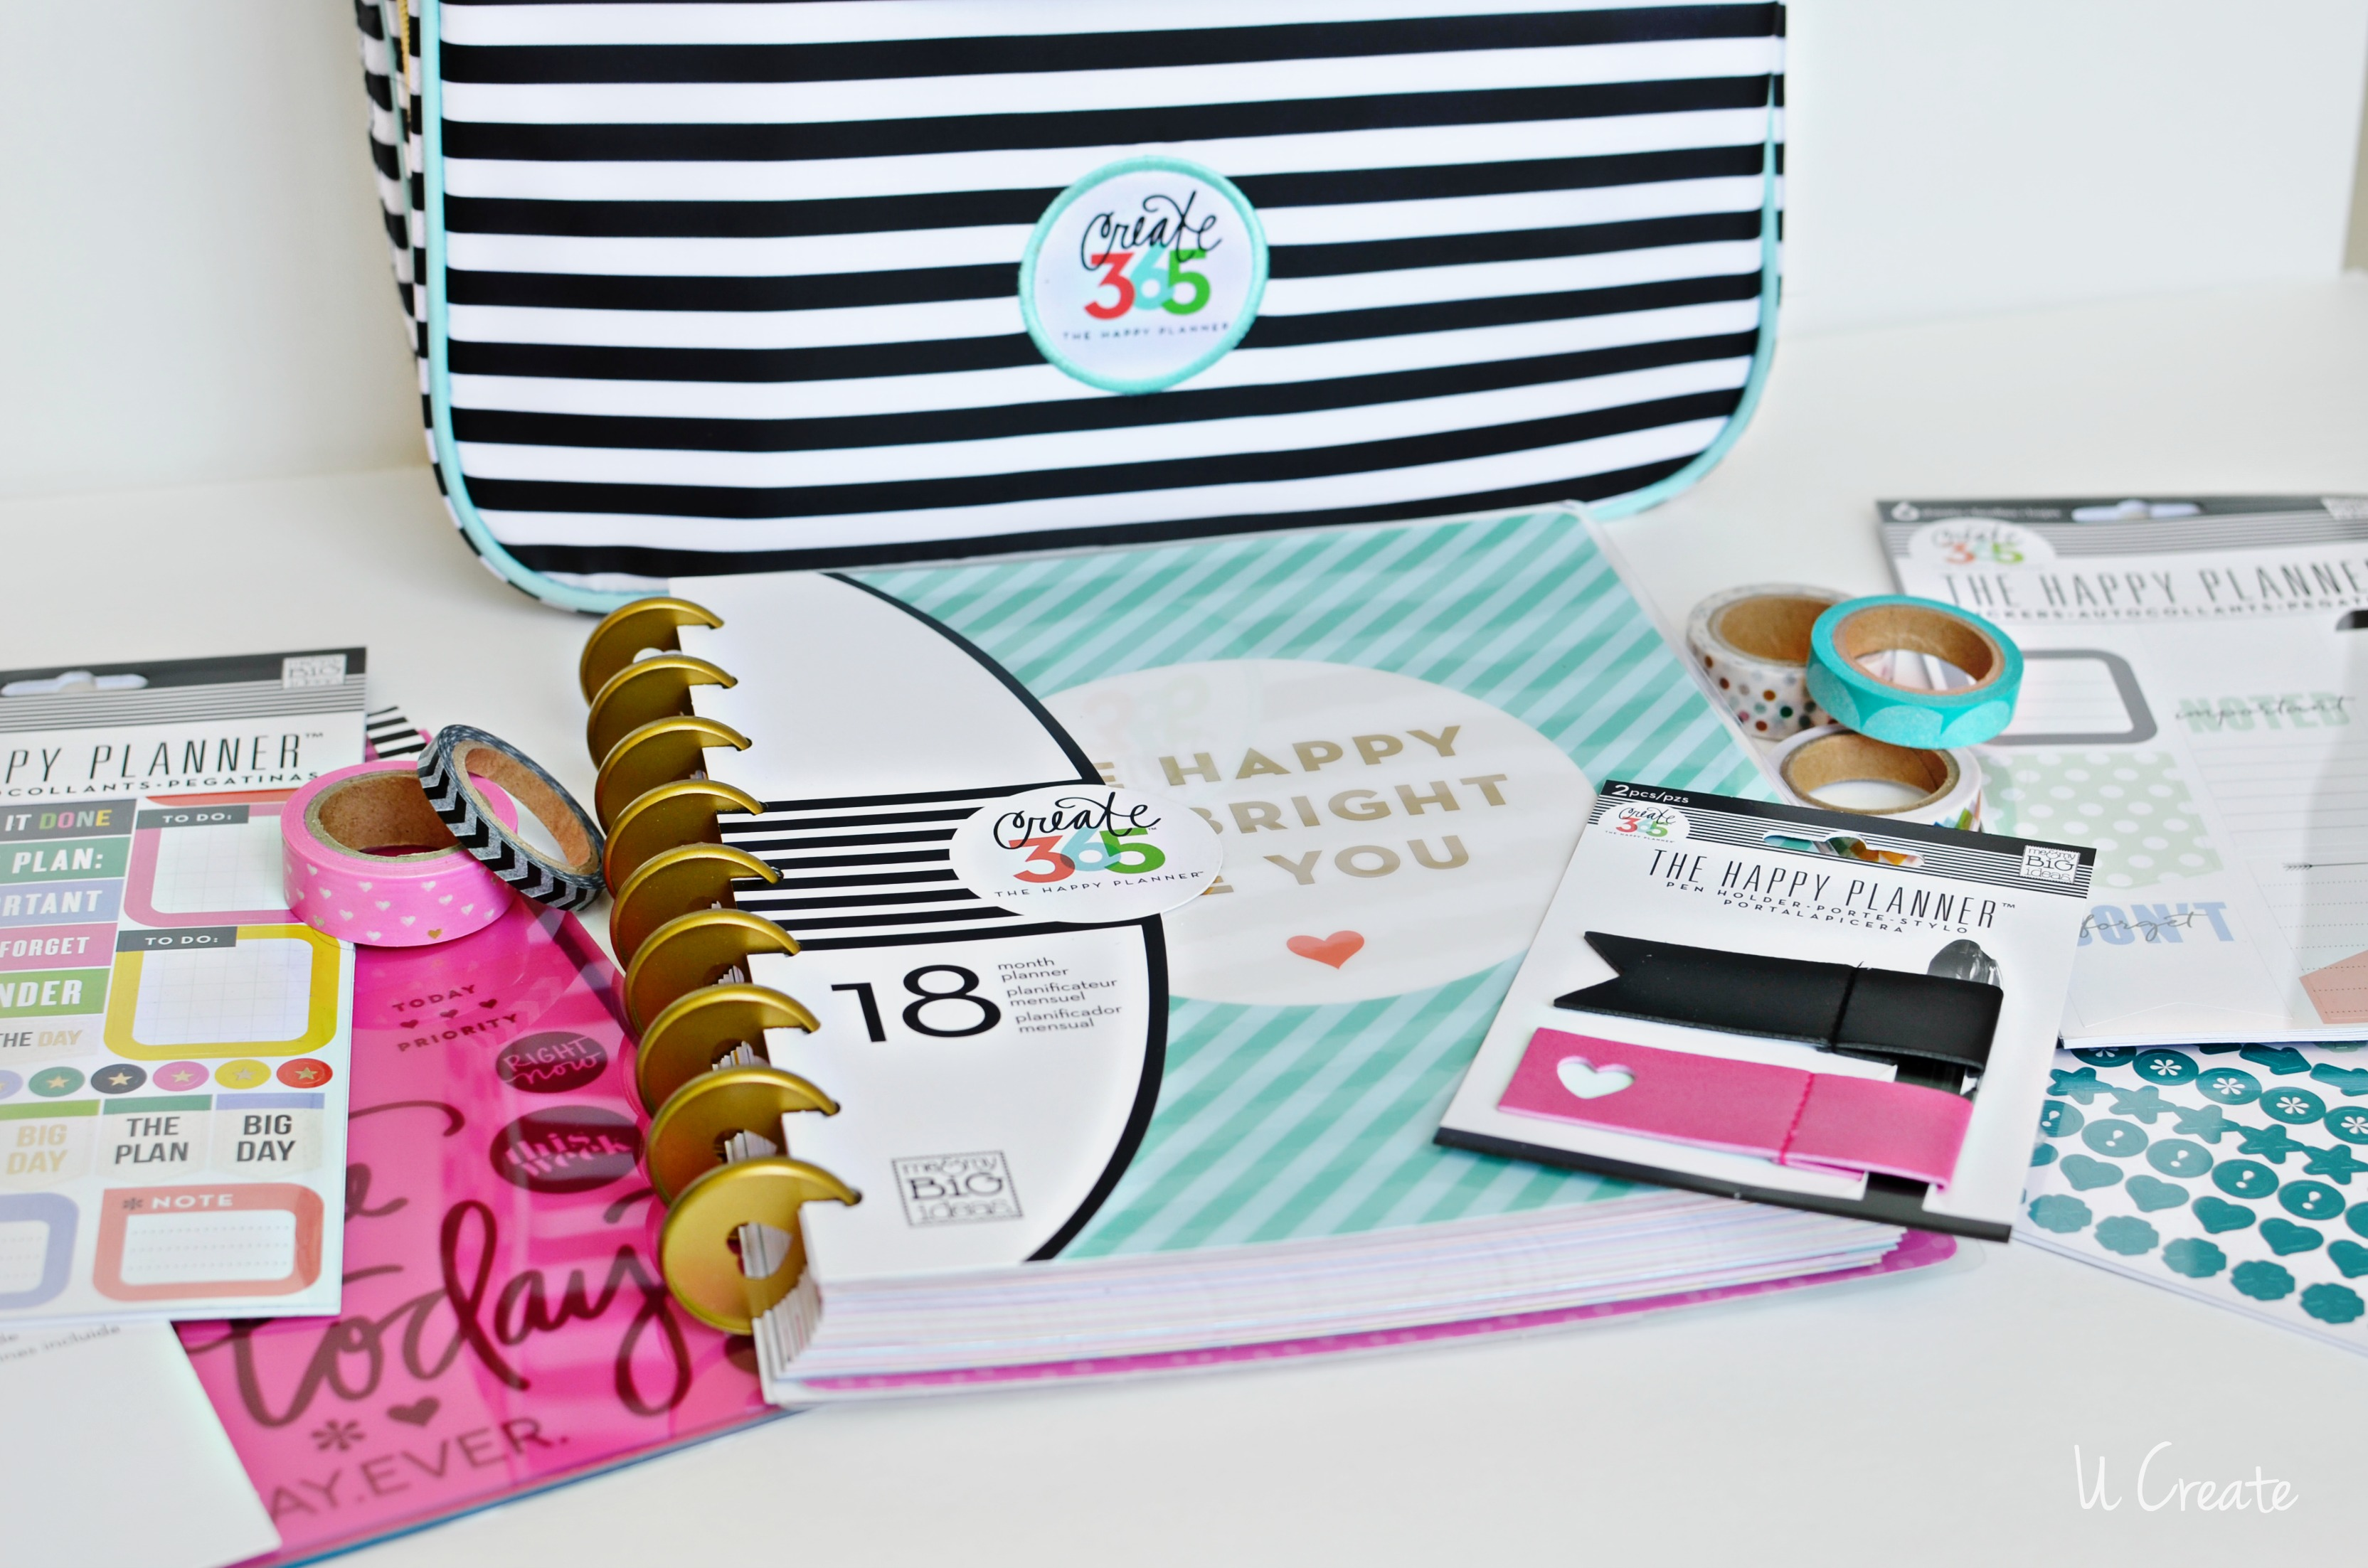 Craft Trend: Planners - why they are so popular!